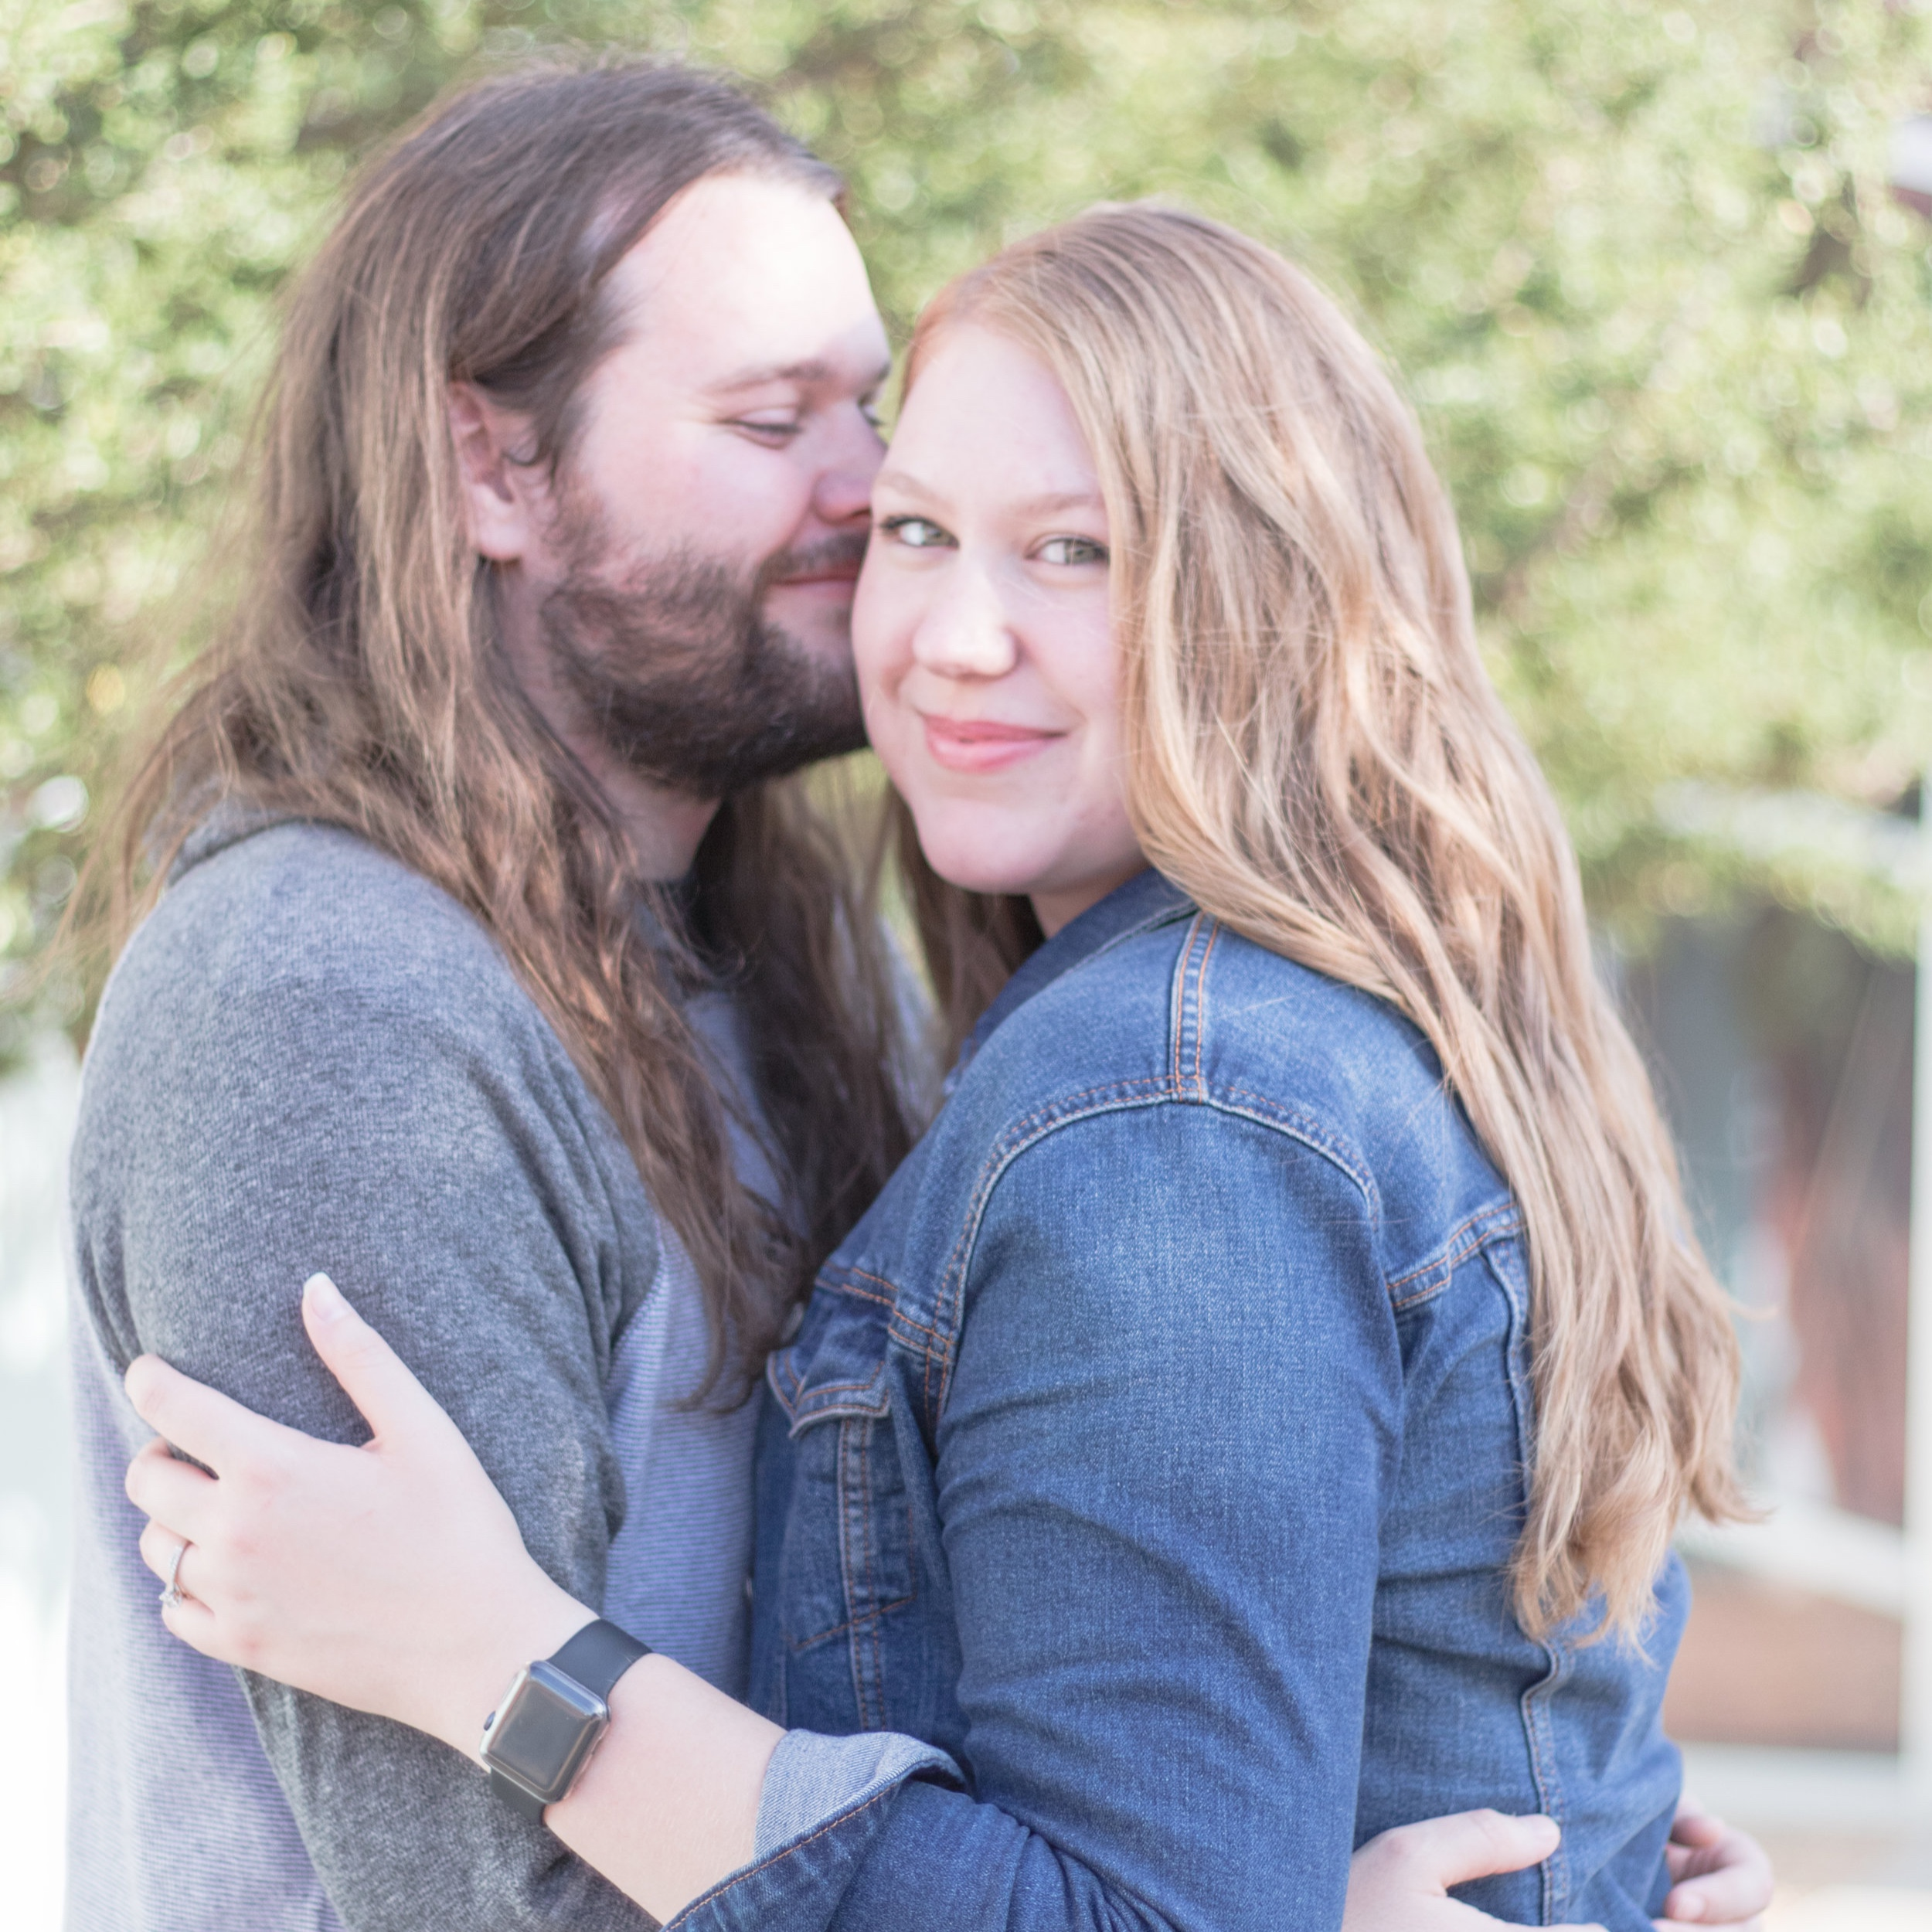 """Carly Pruiett  """"Christina is an absolute joy to work with. She made me and my fiancé feel so comfortable and that comfort reflected in our photos! I highly recommend Christina for all of your photography needs."""""""